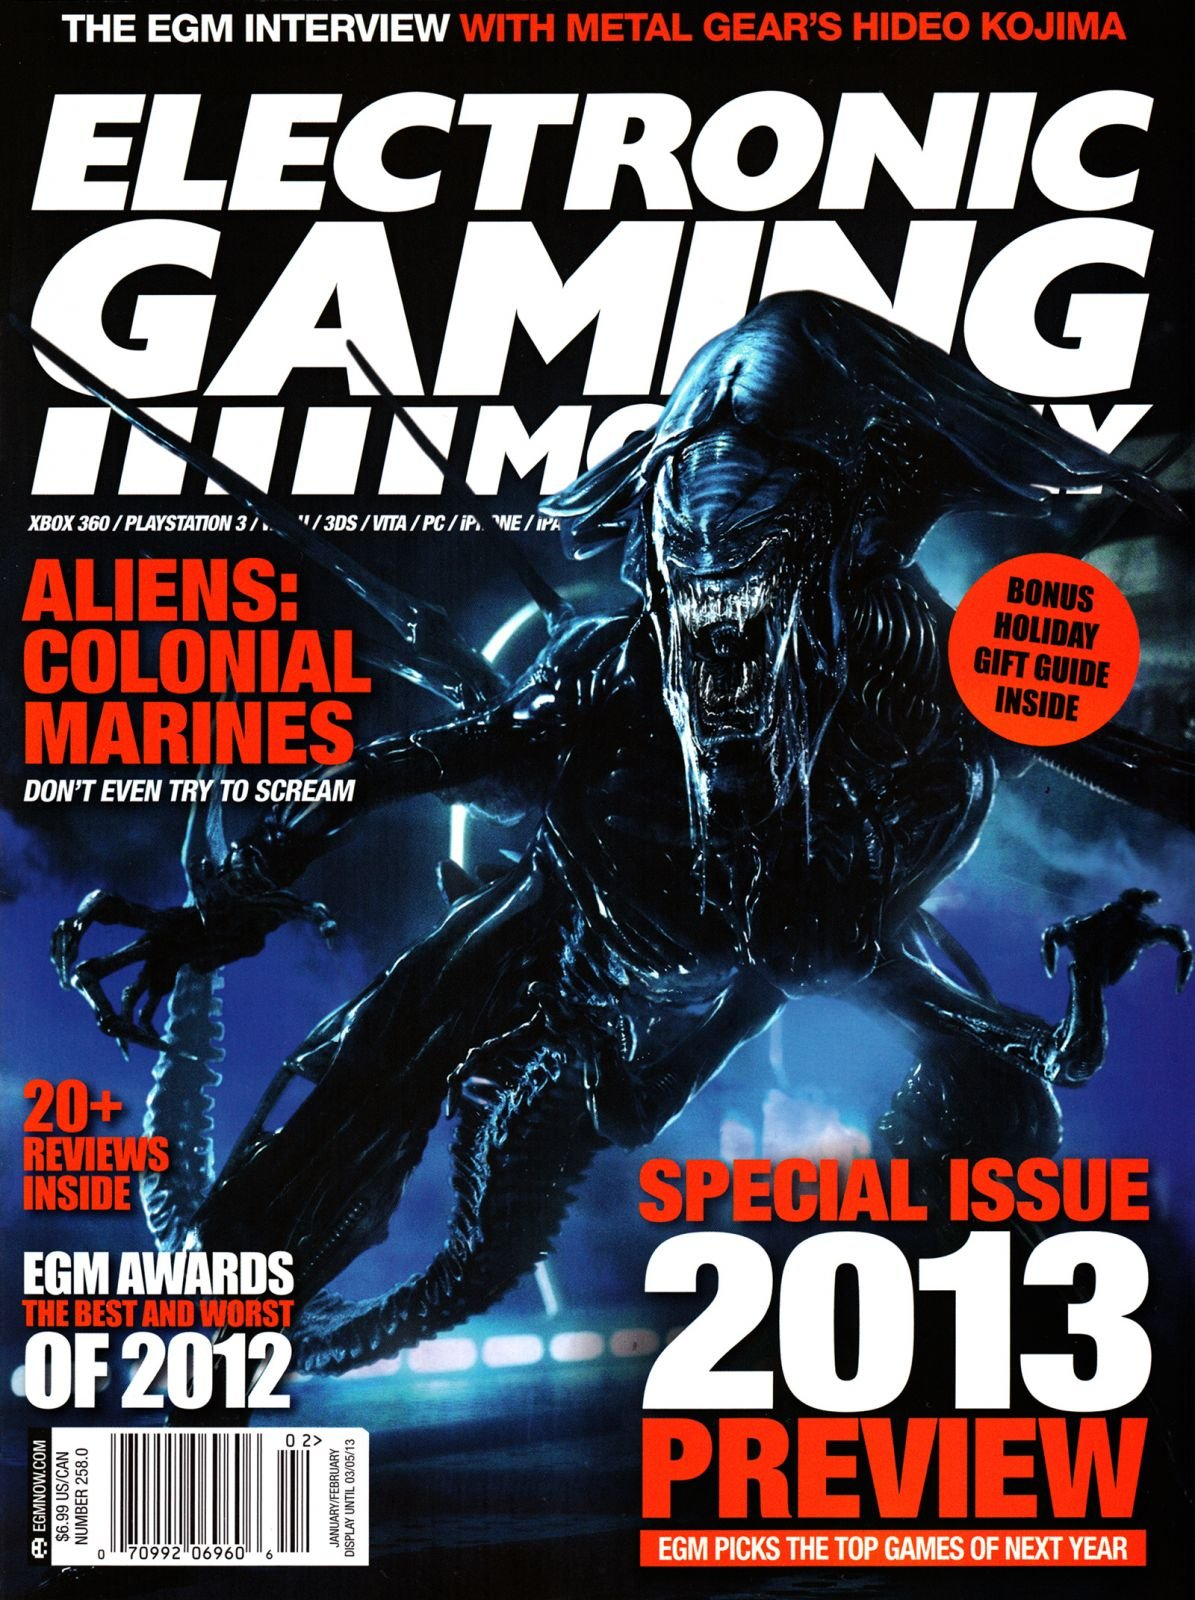 Electronic Gaming Monthly Issue 258 January-February 2013